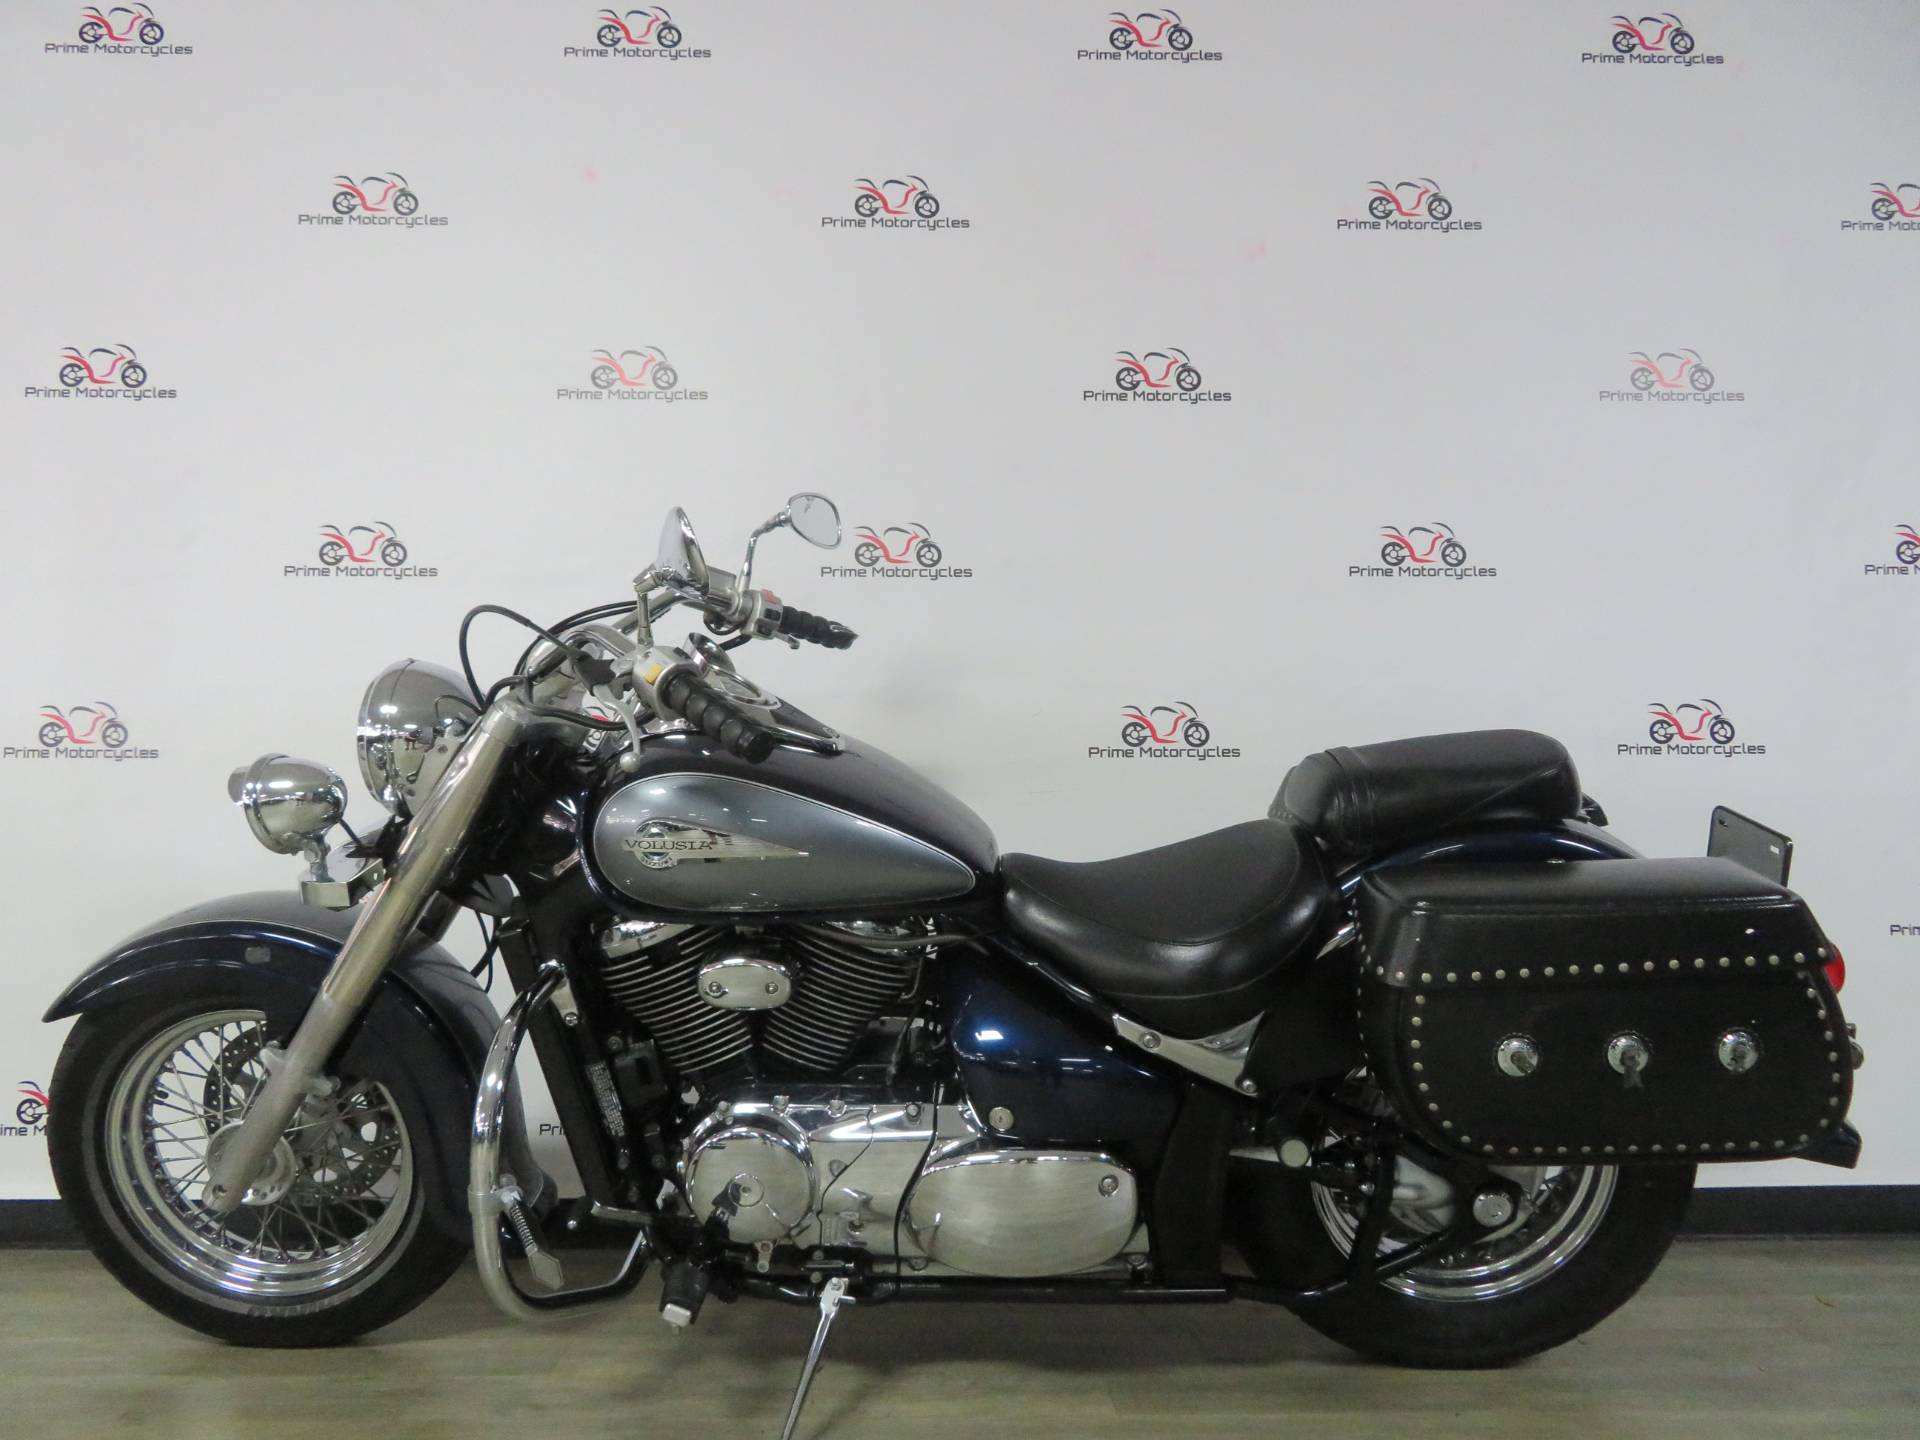 2004 Suzuki Intruder Volusia 800 in Sanford, Florida - Photo 1